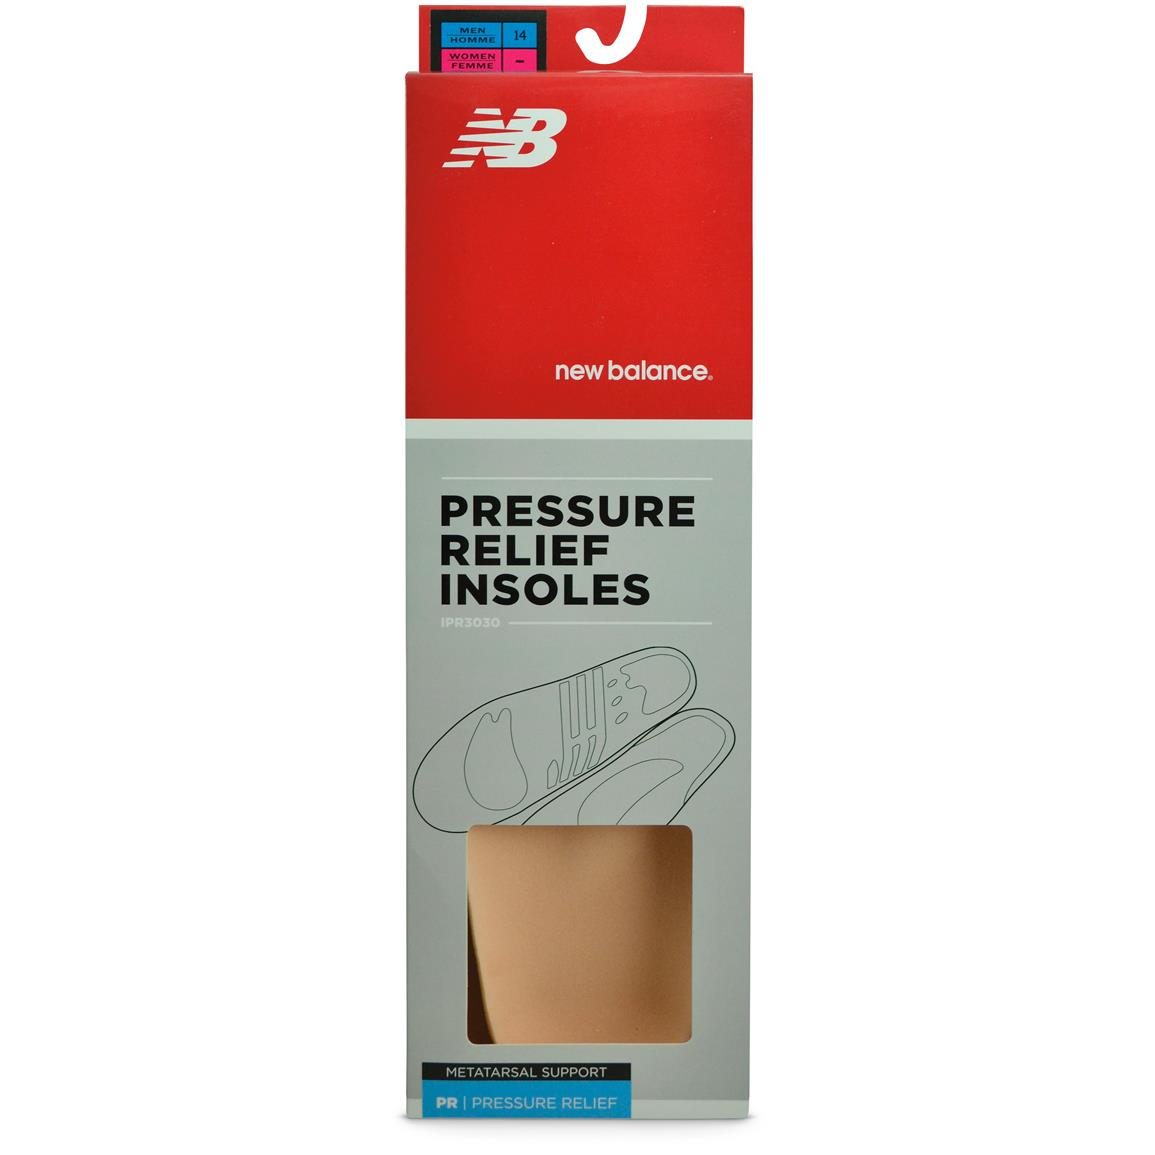 New Balance® IPR3030 Pressure Relief Insoles with Metatarsal Pad